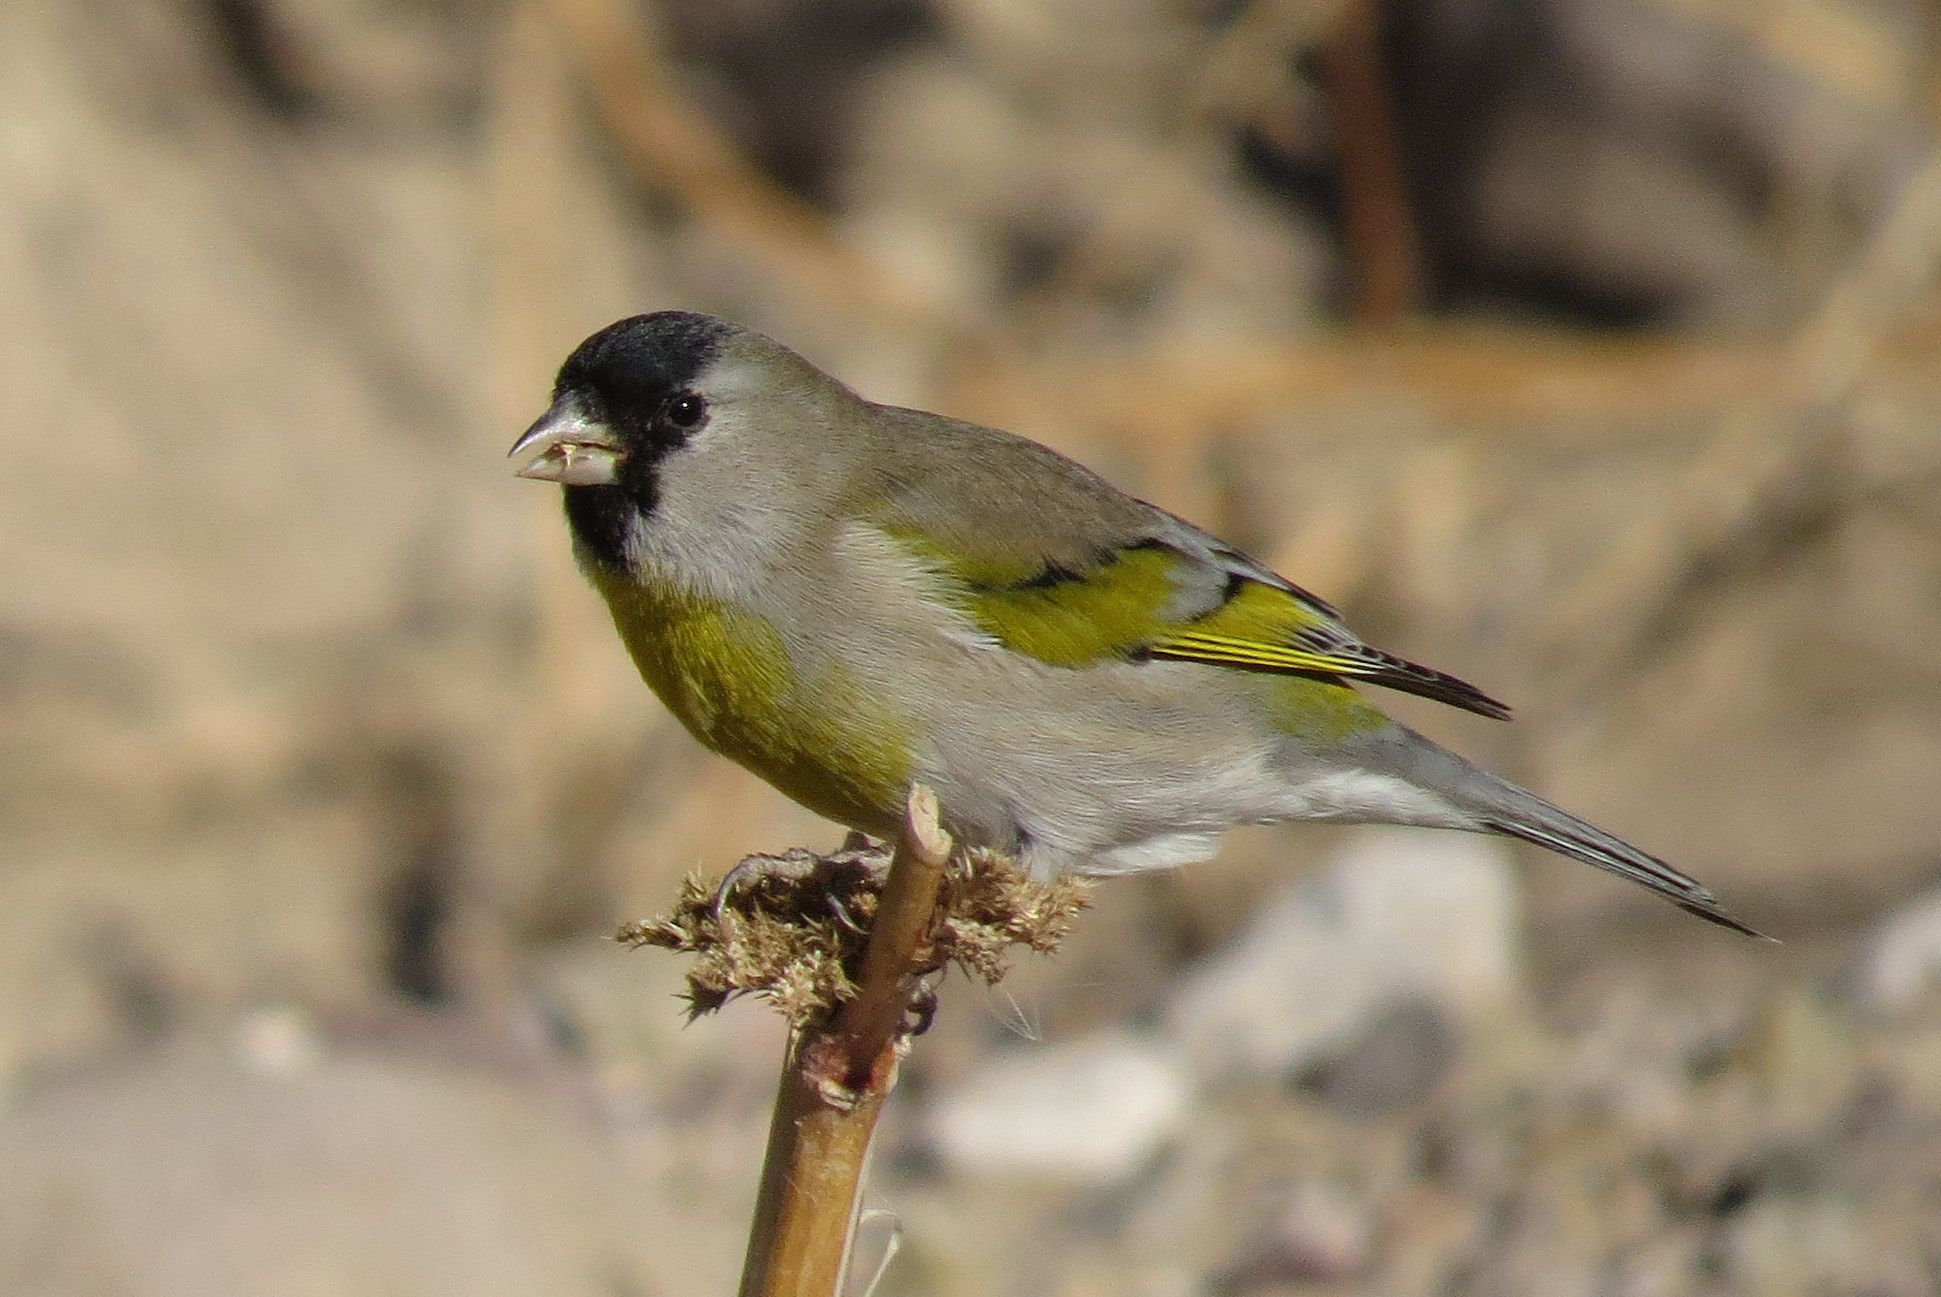 Lawrence's Goldfinch in Tucson, Arizona (Photo by Brian